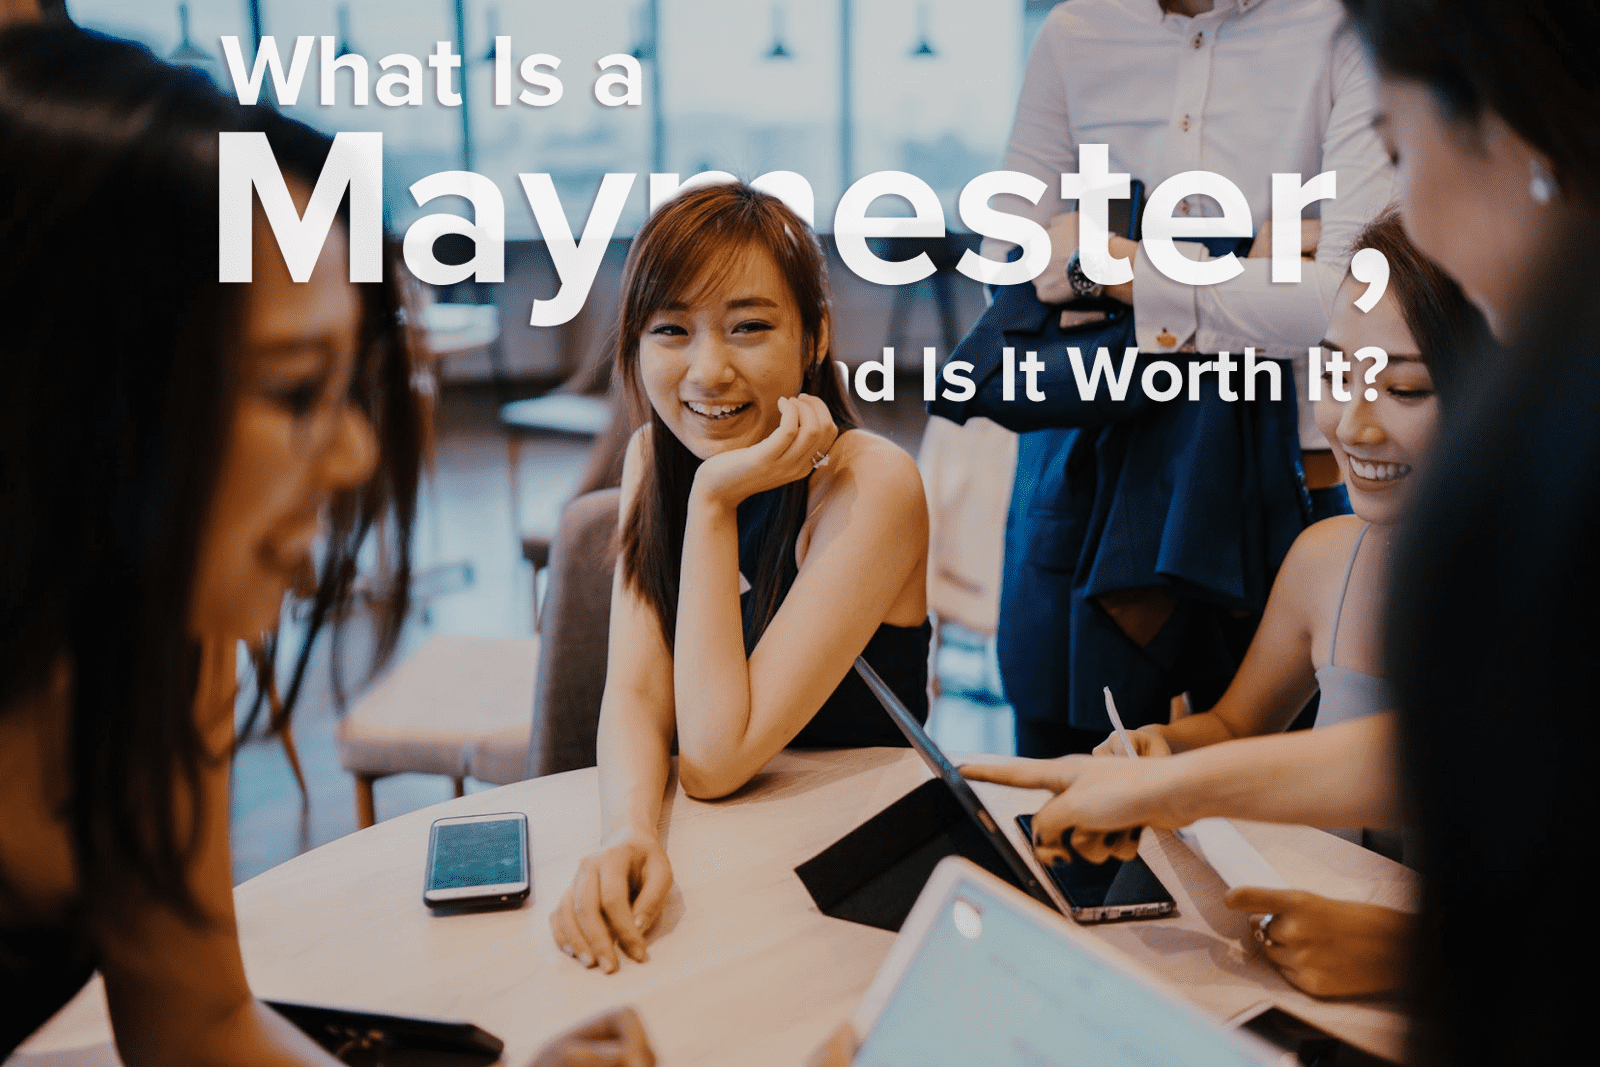 What is a Maymester, and Is it worth it